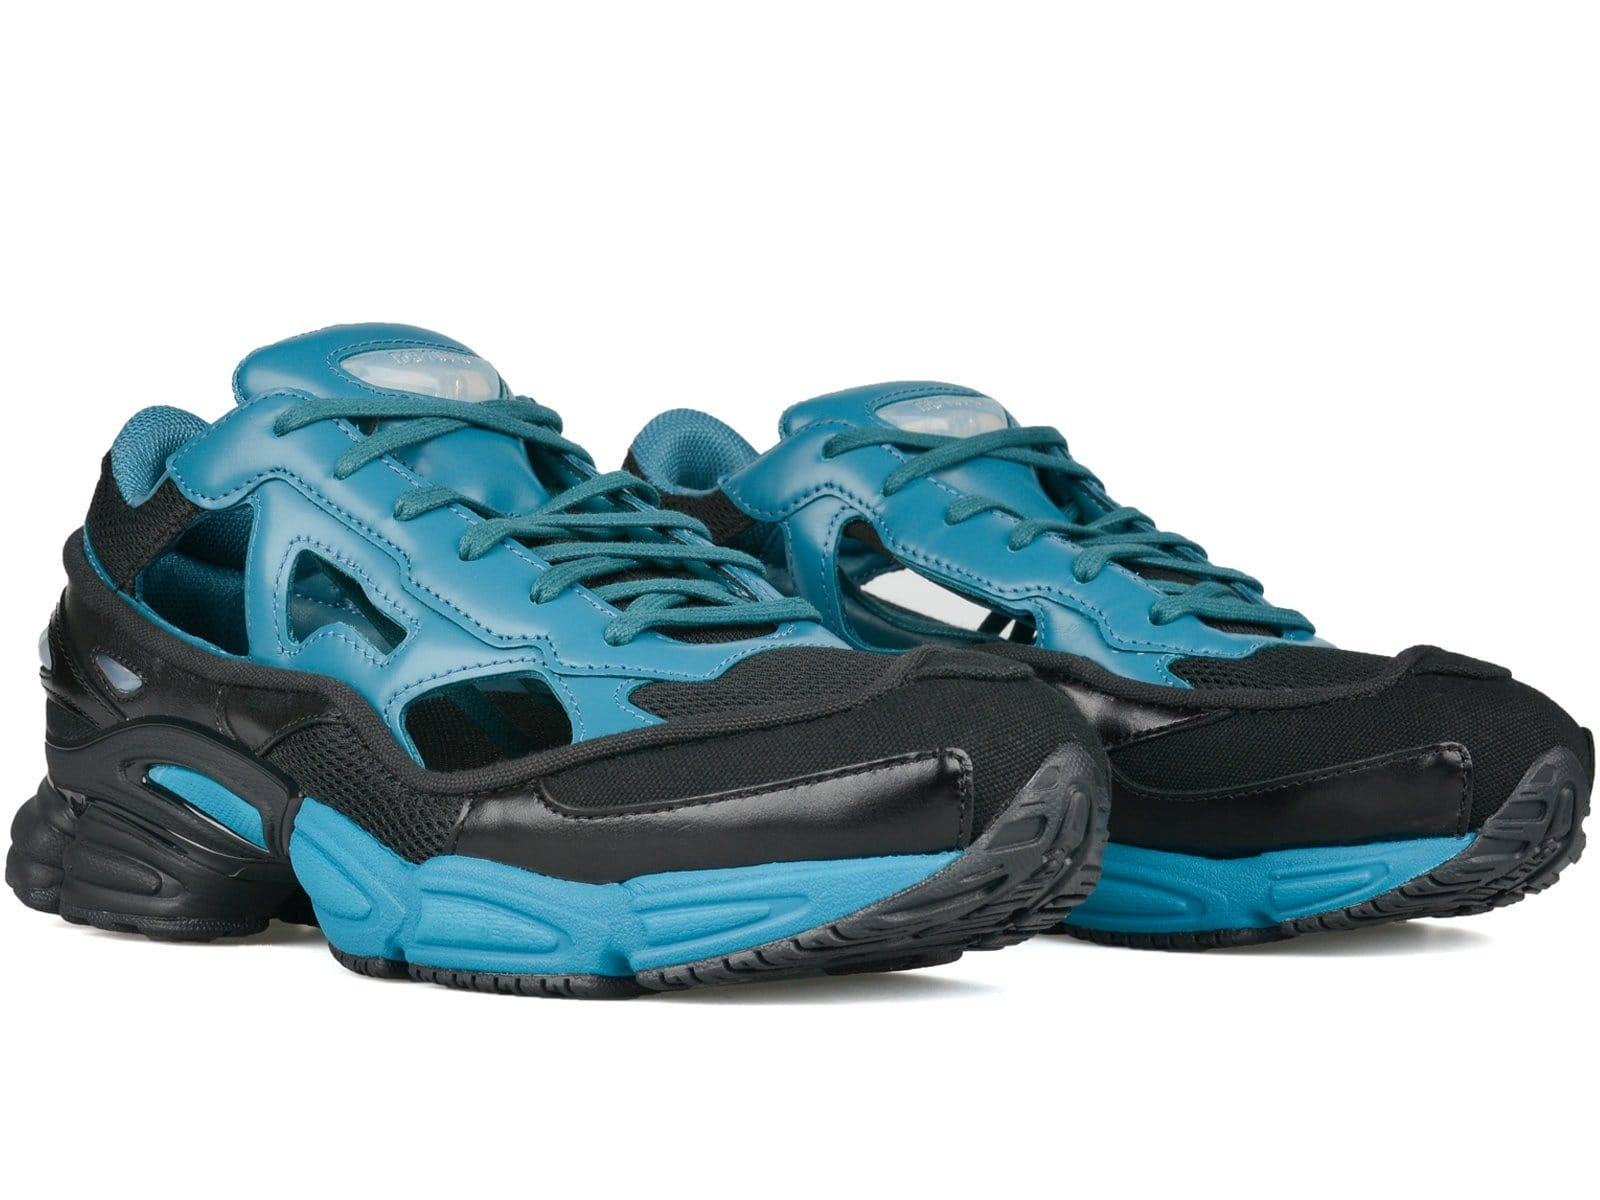 ef1f03d90c589d Adidas x Raf Simons REPLICANT OZWEEGO Core Black Colonial Blue Core Black